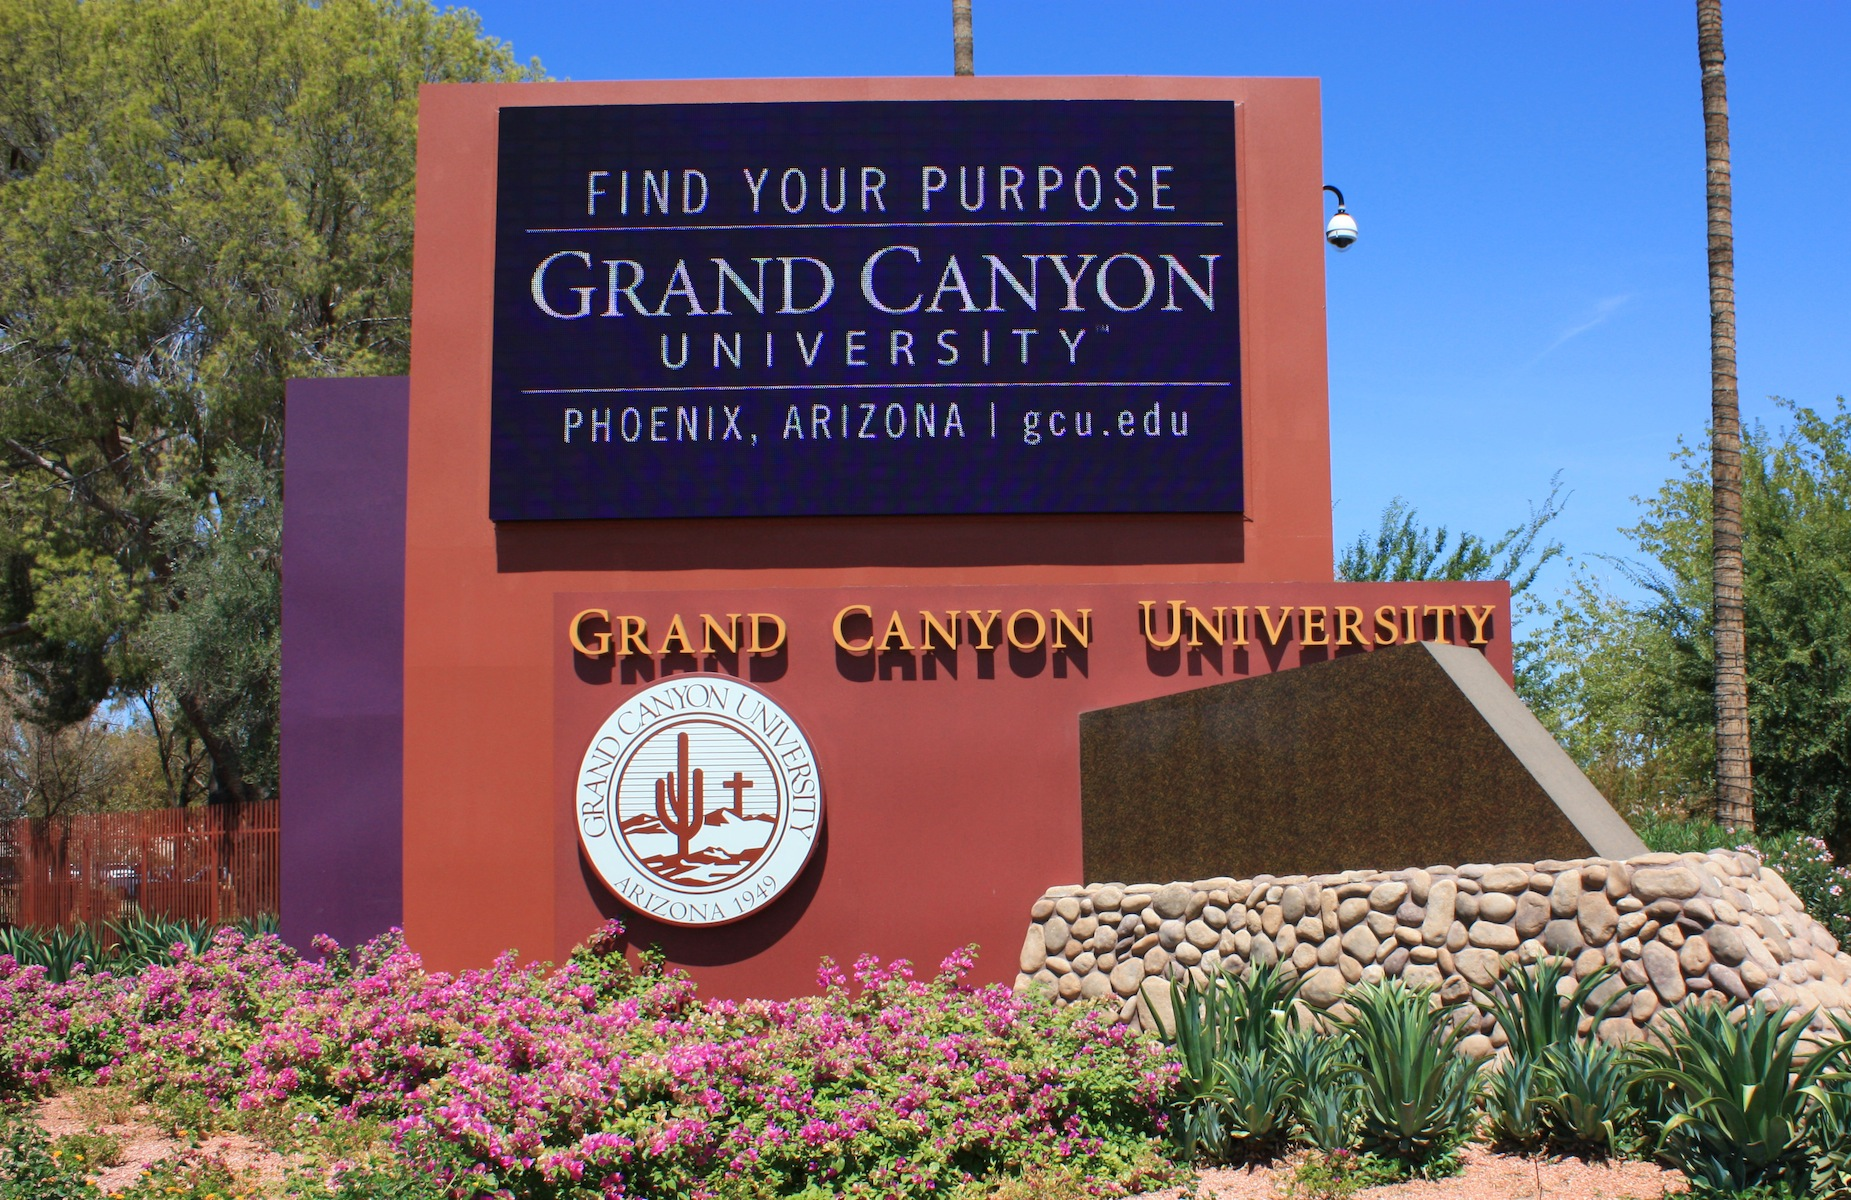 applied statistics at grand canyon university essay A description of a borrowed theory that could be applied to the application of borrowed theory to problem and conclusion (essay grand canyon university.